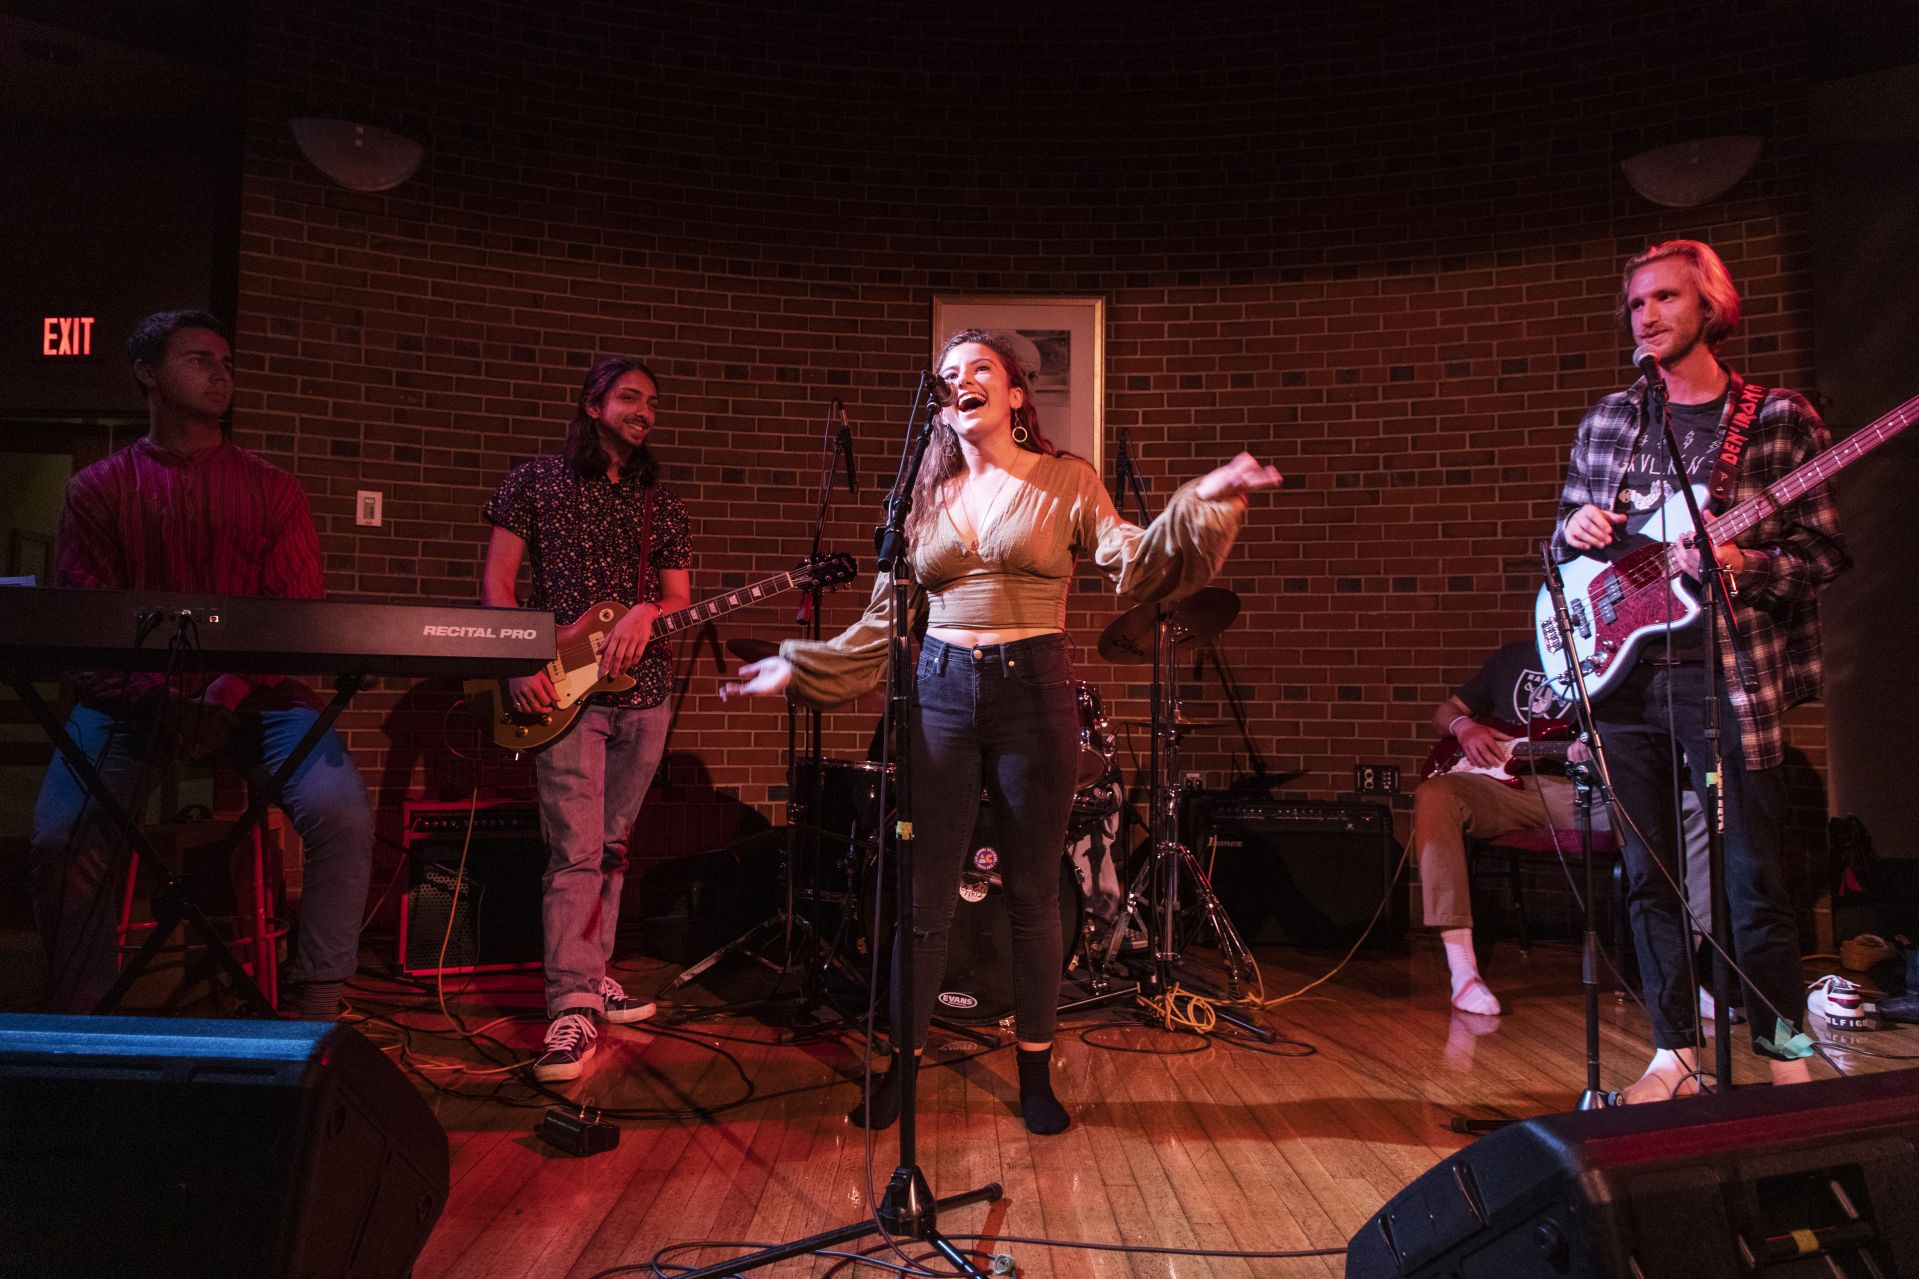 Surrounded by bandmates, Becca Kraft of Newton Center, Mass.,